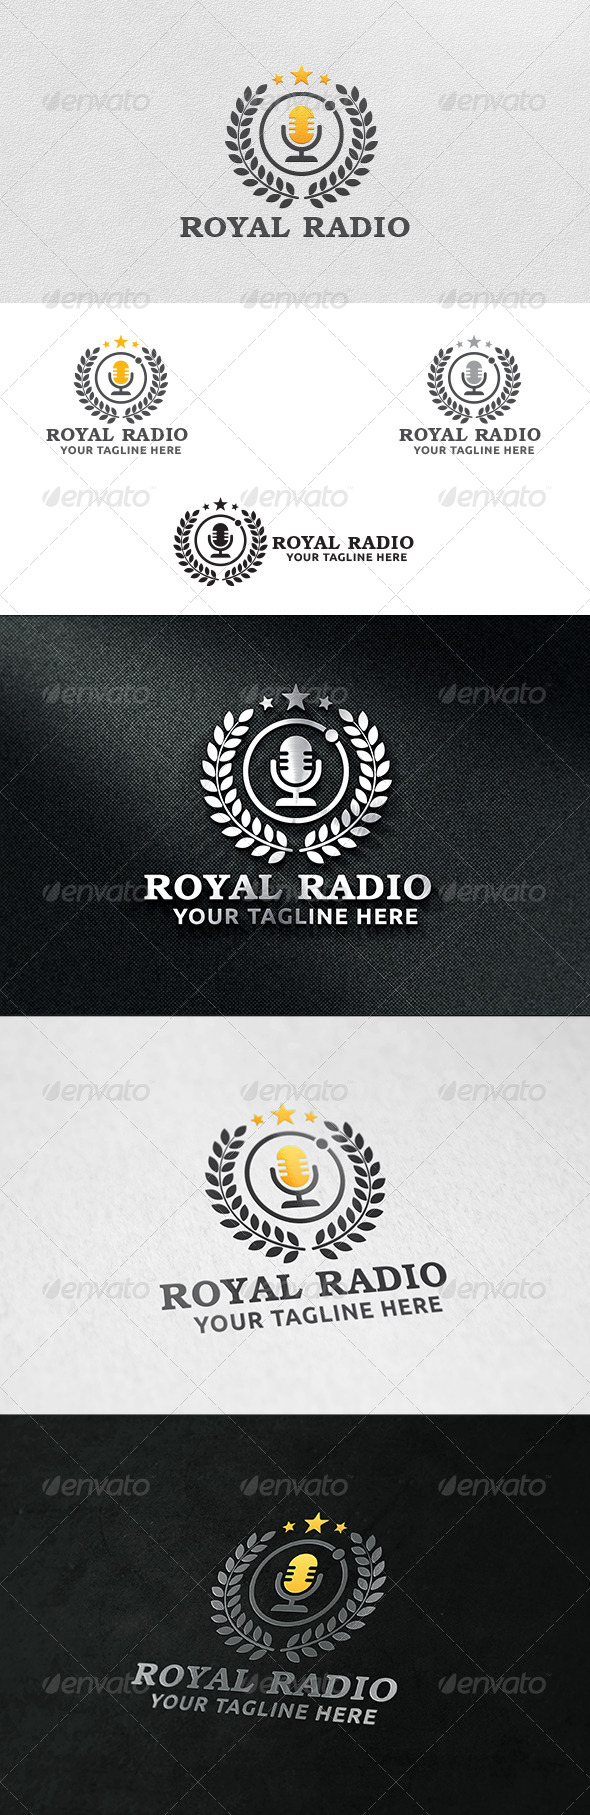 GraphicRiver Royal Radio Logo Template 6213069